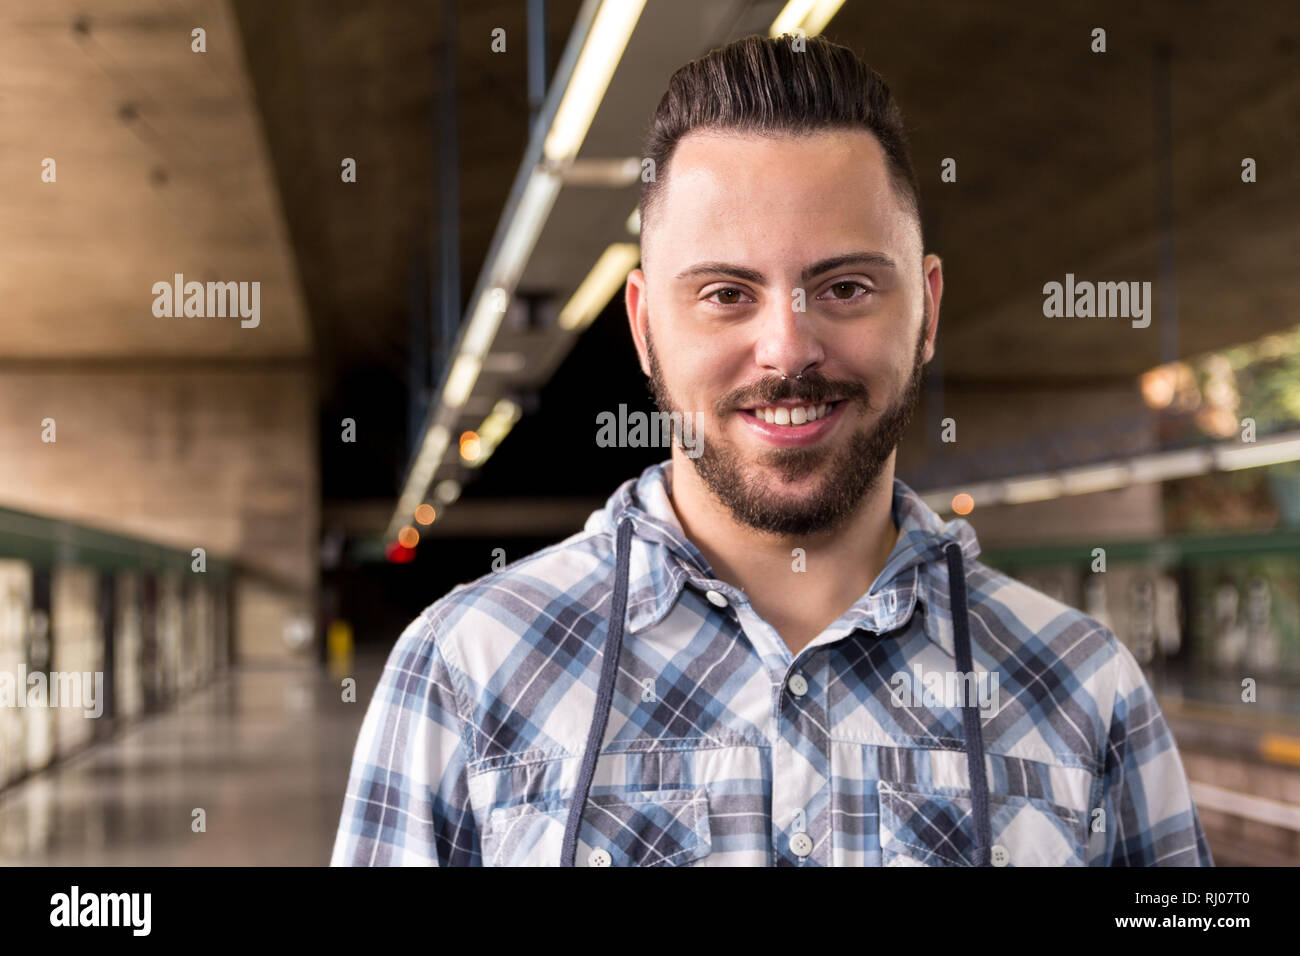 c0fefc24 Portrait of Young bearded man wearing plaid shirt waiting for train at tube  subway station. Concept of commute, transport service, mobility.